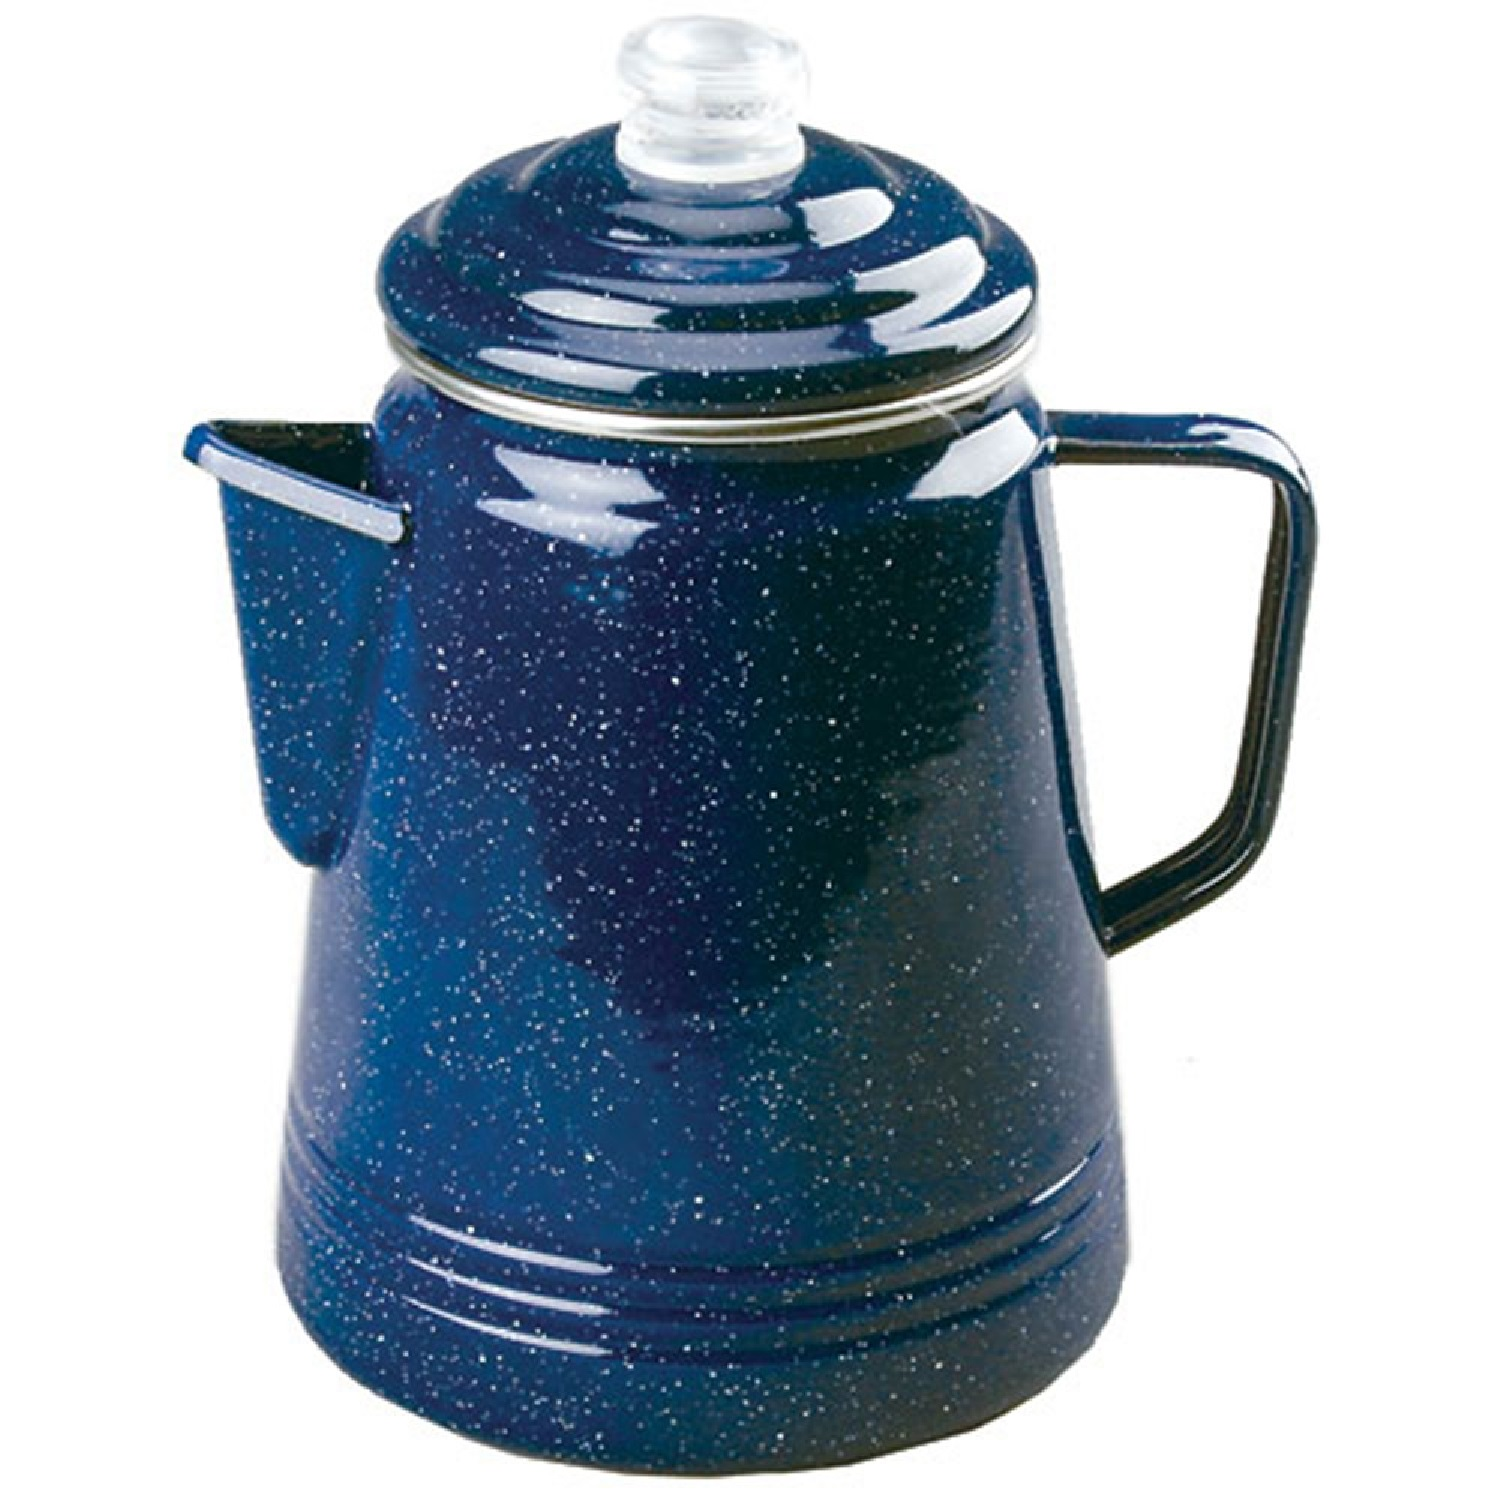 Coffee Percolator, Enamel, Blue, Double Coated, 14 Cup